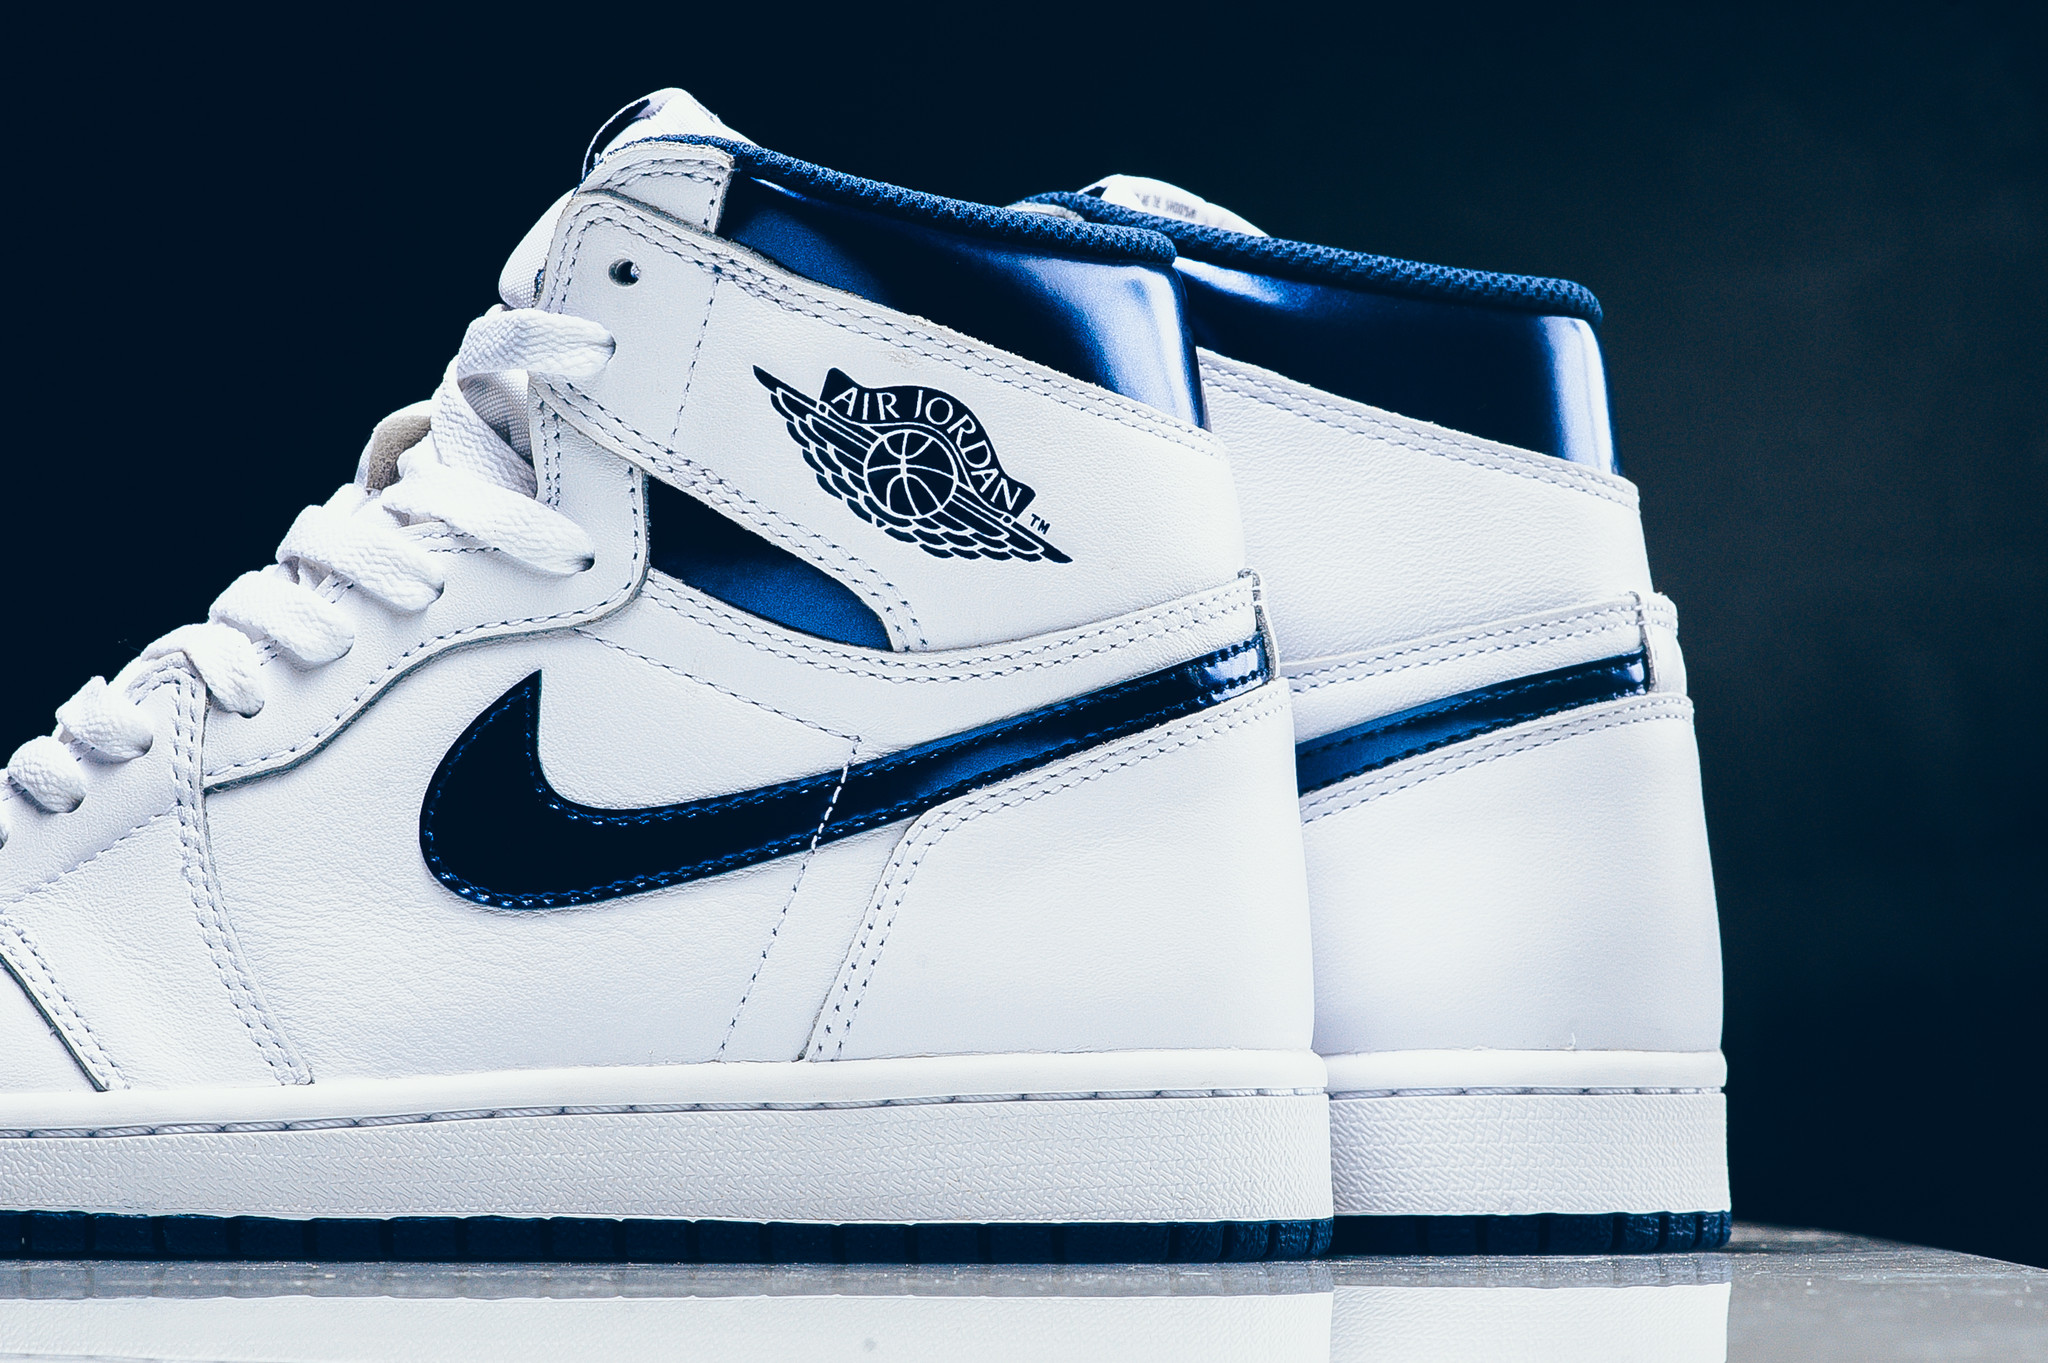 85df4f115bd ... Air Jordan 1 High OG Metallic Navy hot sale 2017 Top Sneakers On Sale  at Offspring!